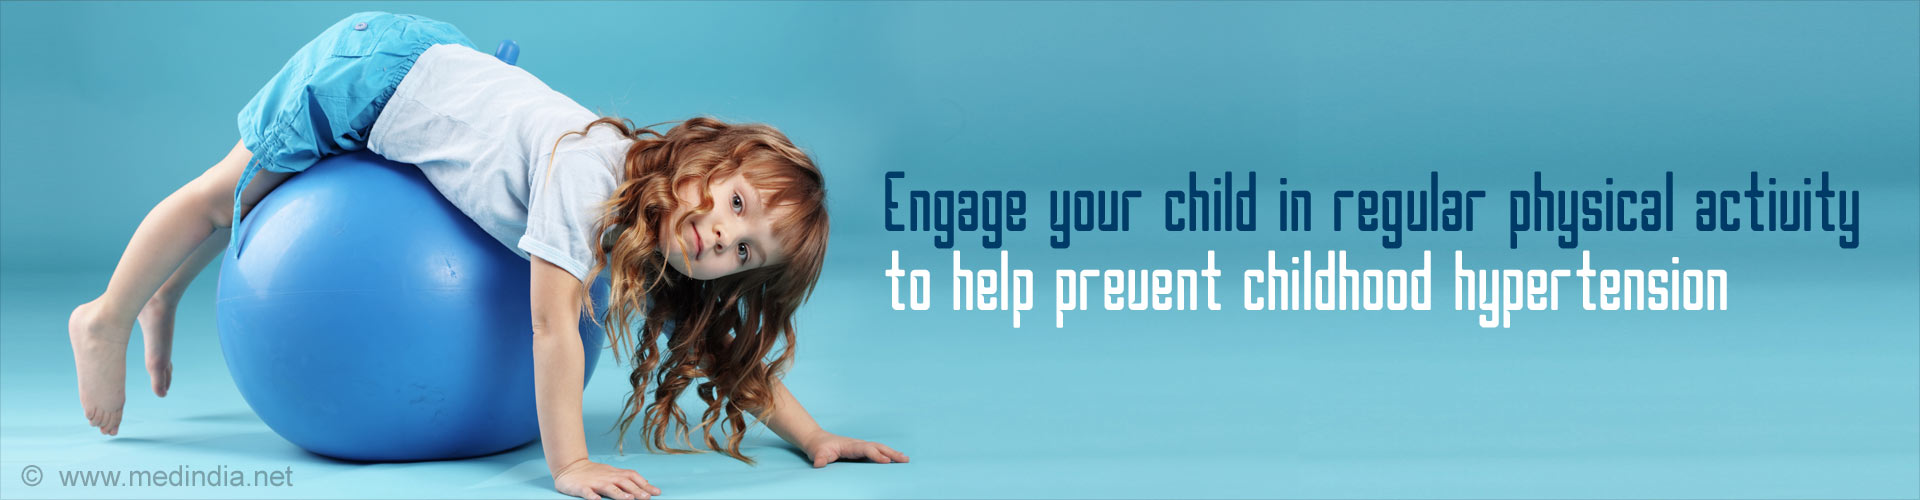 Engage your child in regular physical activity to help prevent childhood hypertension